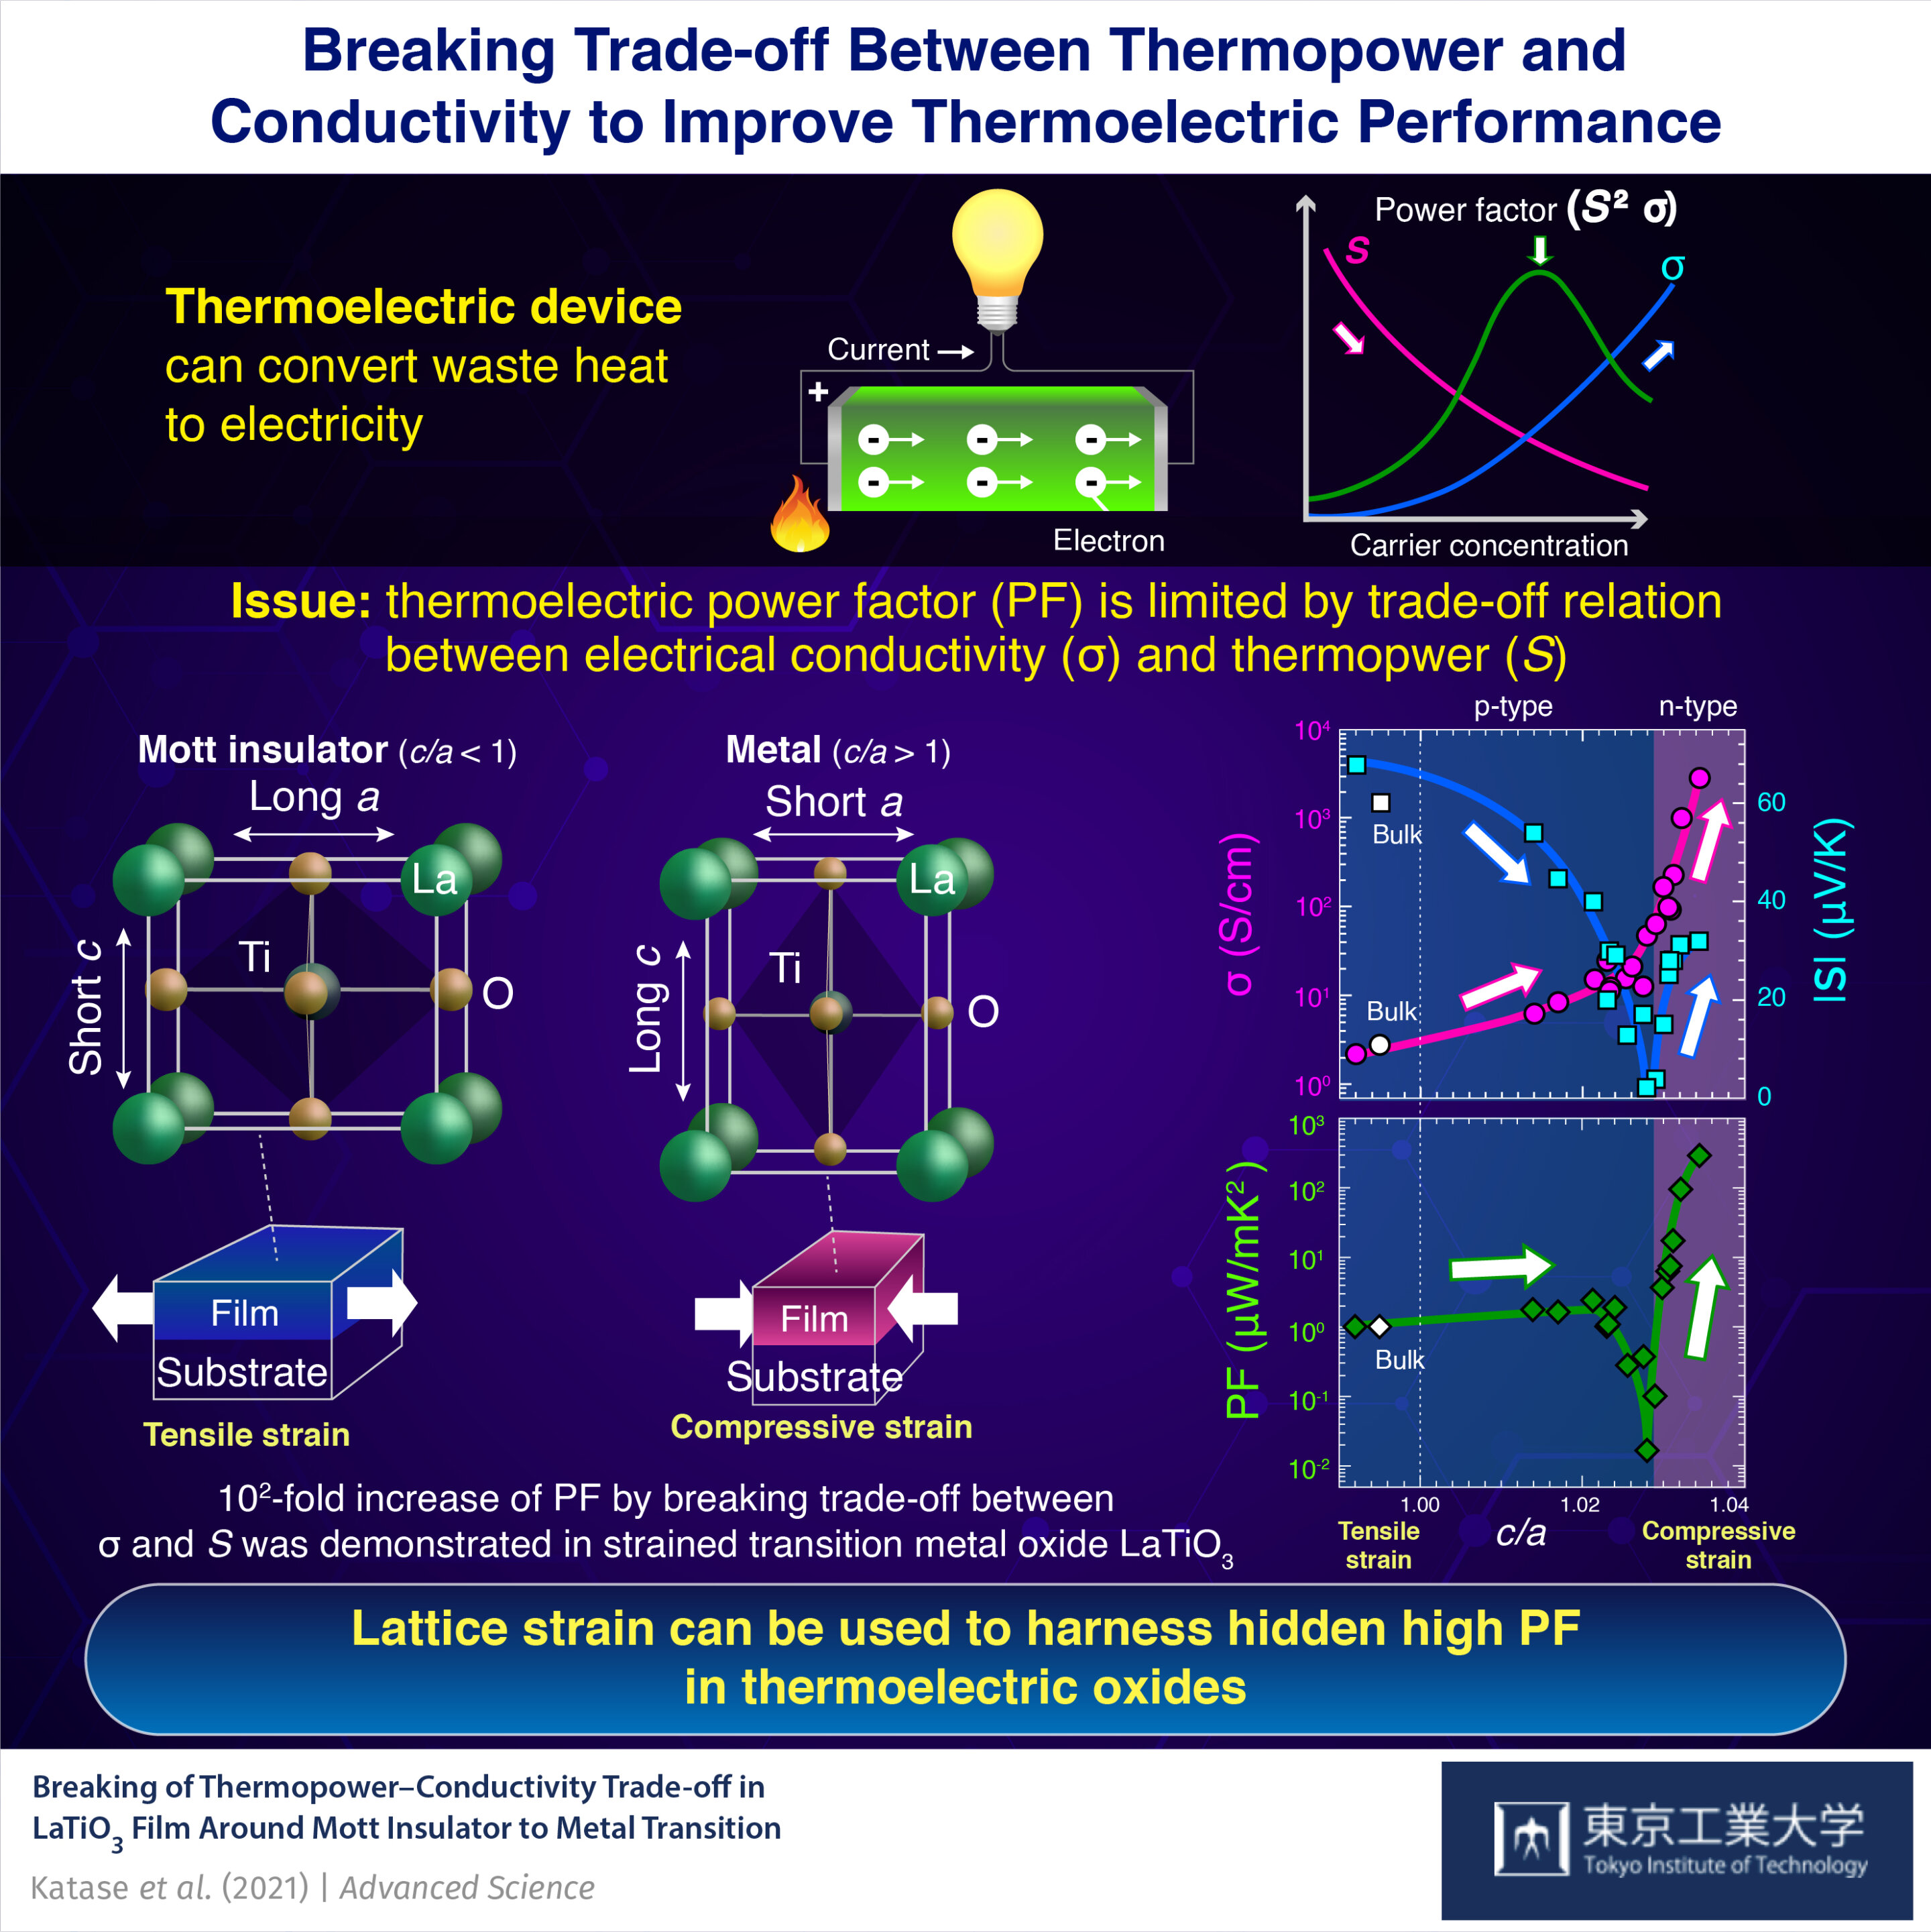 Breaking trade-off problem that limits thermoelectric conversion efficiency of waste heat